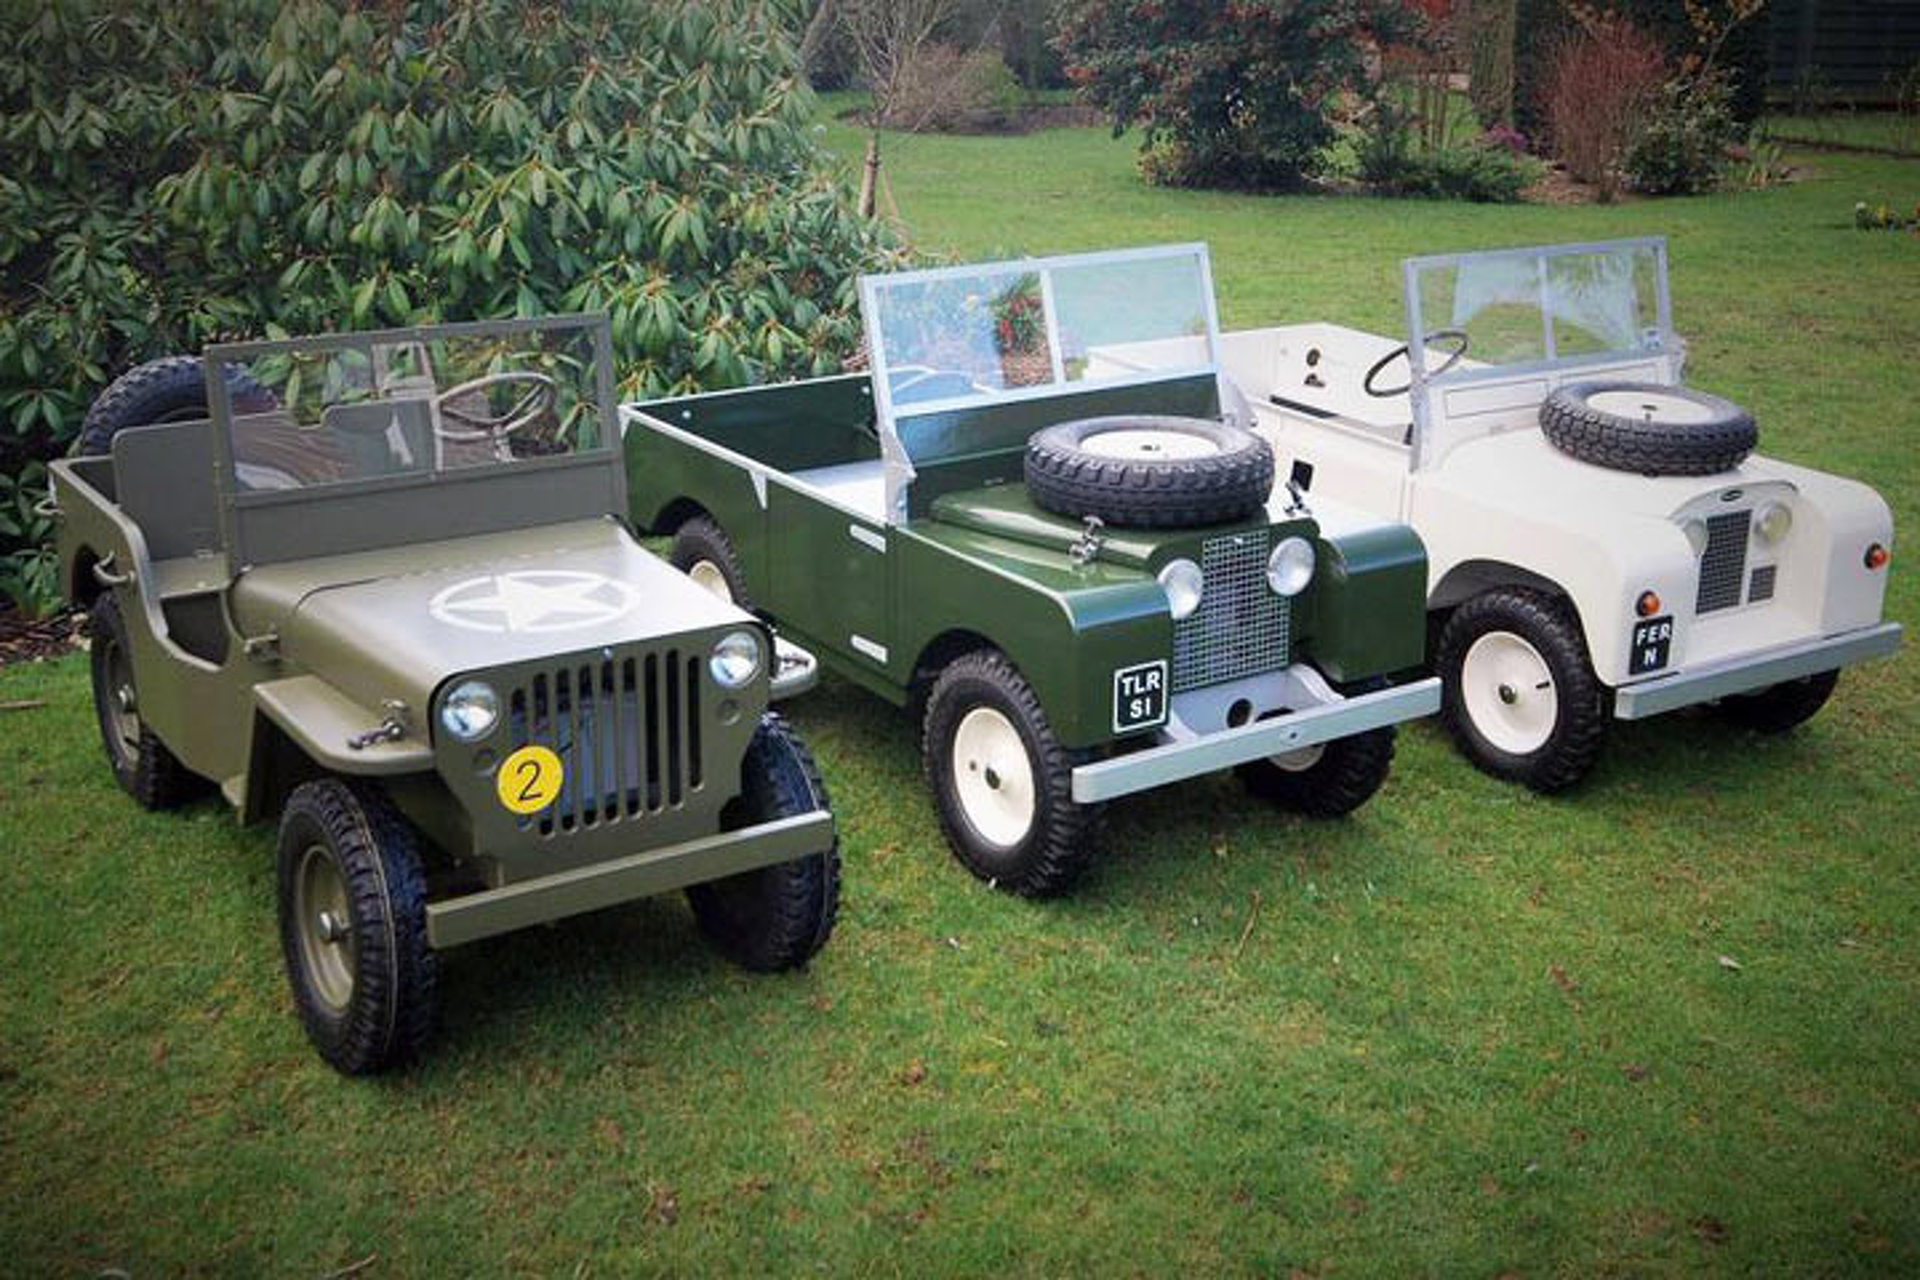 https://icdn-1.motor1.com/images/mgl/0YZoz/s1/the-toylander-is-the-teeny-tiny-land-rover-for-kids.jpg